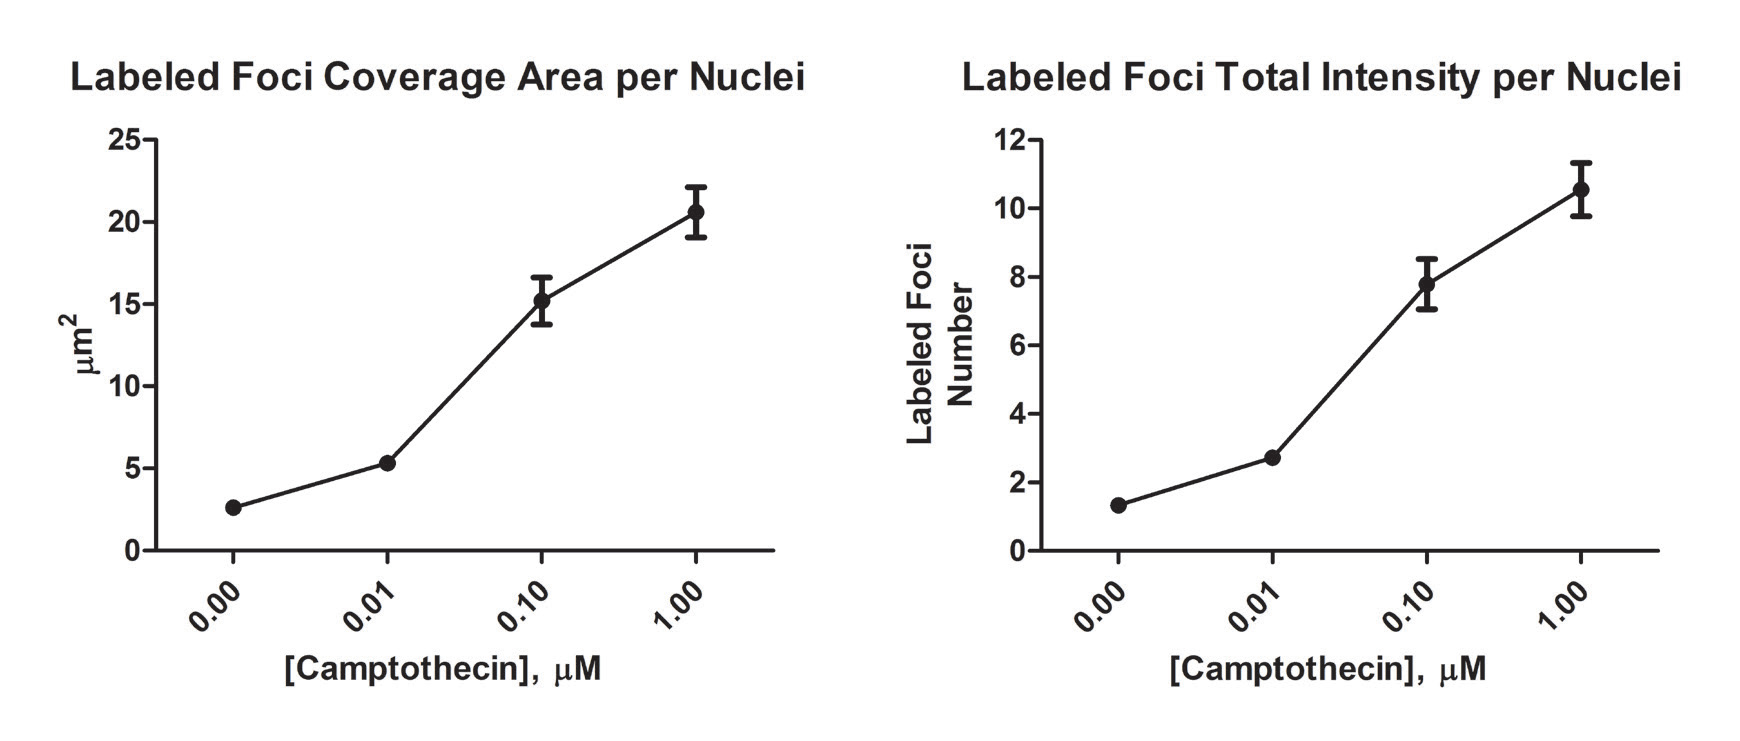 Labeled foci analyses using U251 cells exposed to various camptothecin concentrations